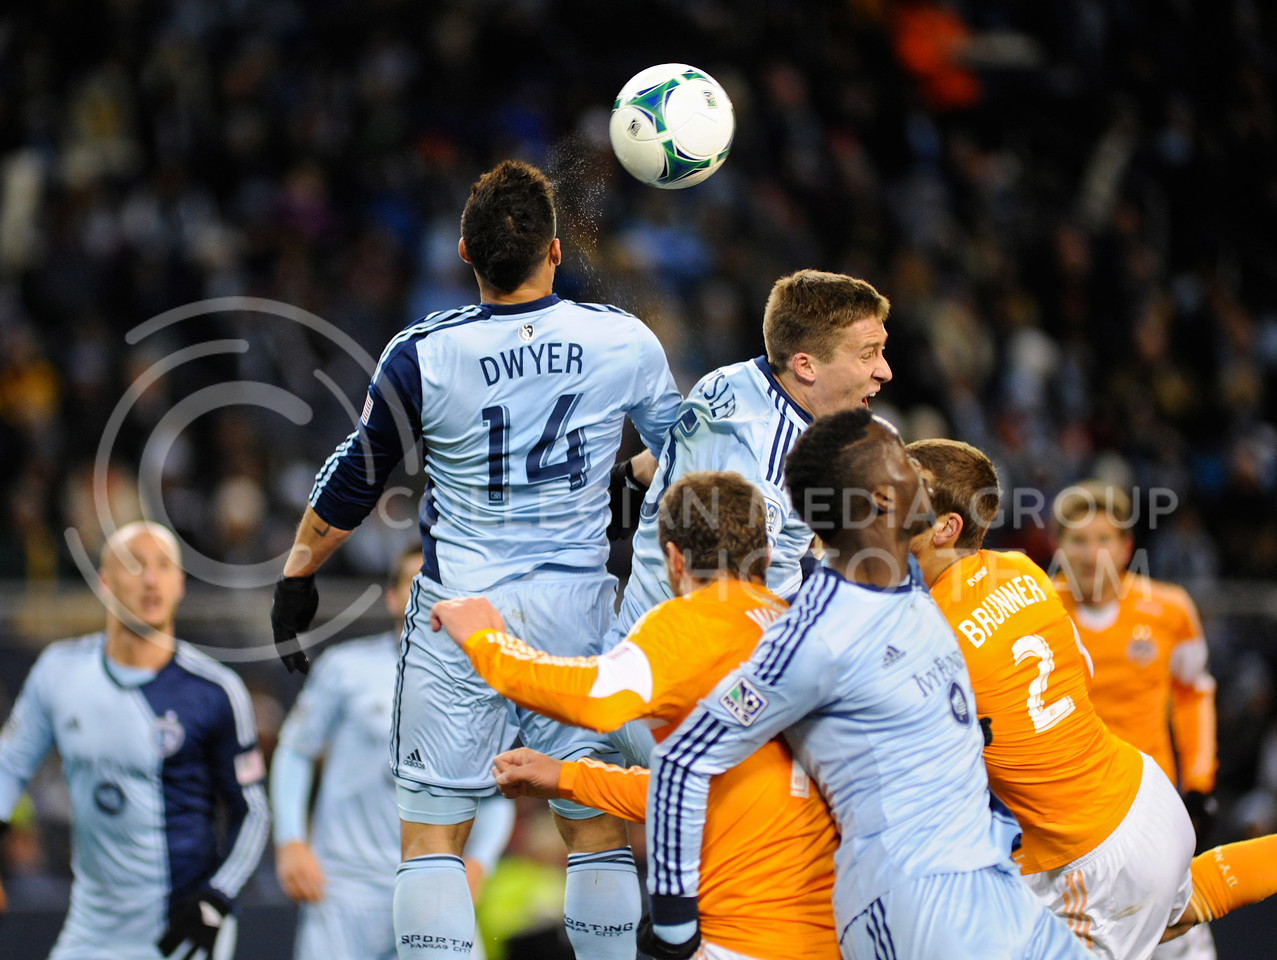 (Photo by Parker Robb | Collegian)<br /> <br /> Sporting KC and Houston Dynamo players battle for the ball as Sporting forward Dom Dwyer goes for a header during the MLS Eastern Conference championship game November 23 at Sporting Park, where Kansas City beat Houston 2-1. Sporting KC has had a championship-caliber season, amassing a 17-10-7 record, most recently avenging the club's two losses to Houston in the Eastern Conference championship games the previous two years, and now hosting the MLS Cup on December 7.